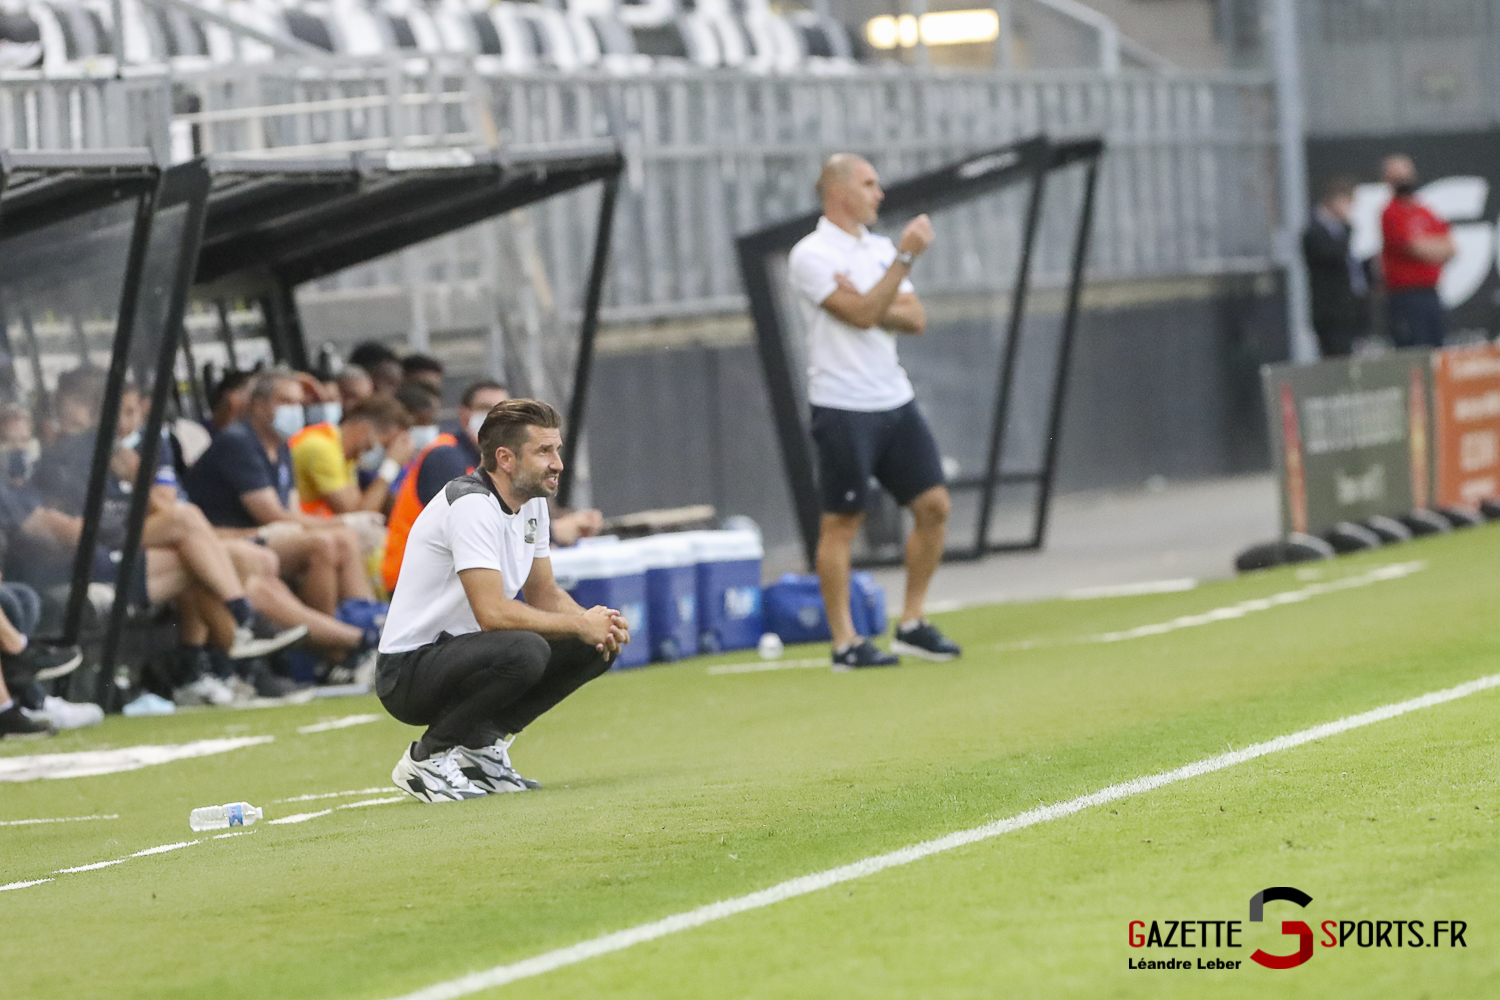 Football Ligue 2 Amiens Sc Vs Troyes Amical 0058 Leandre Leber Gazettesports